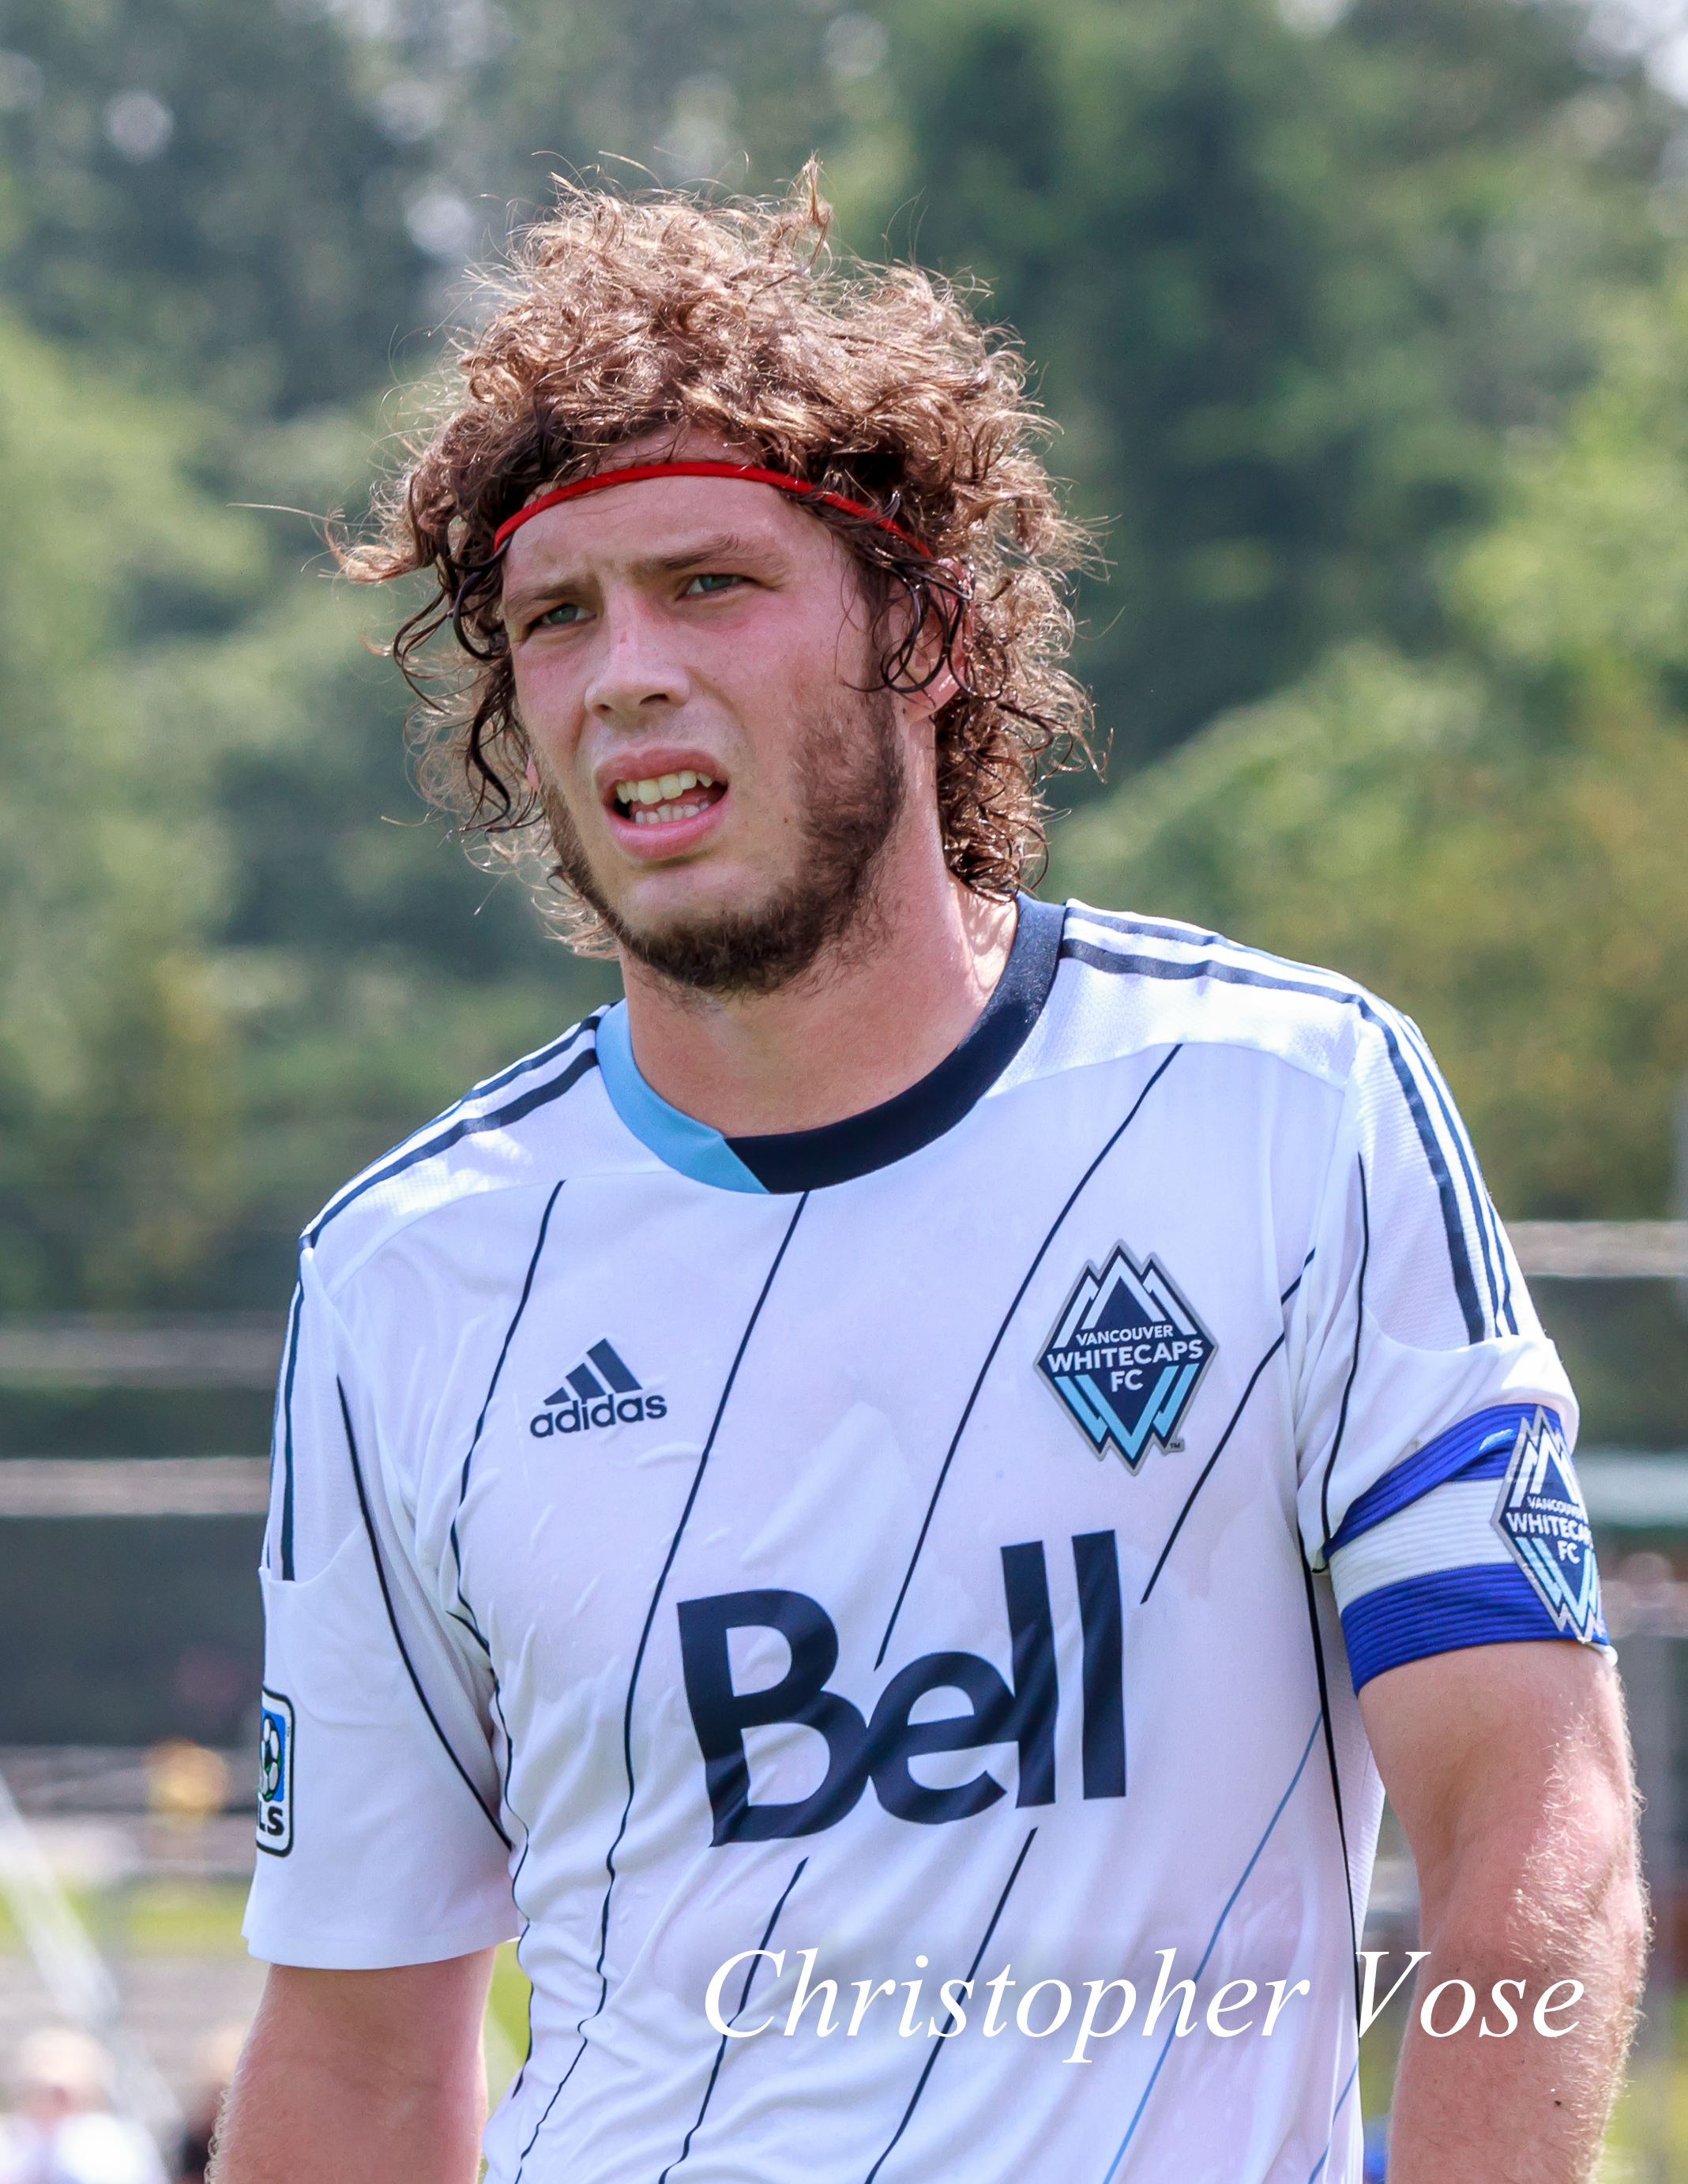 Tom Heinemann captains the Vancouver Whitecaps FC against Seattle Sounders FC in the MLS Reserve League at Willoughby Community Park on 7 July 2013.